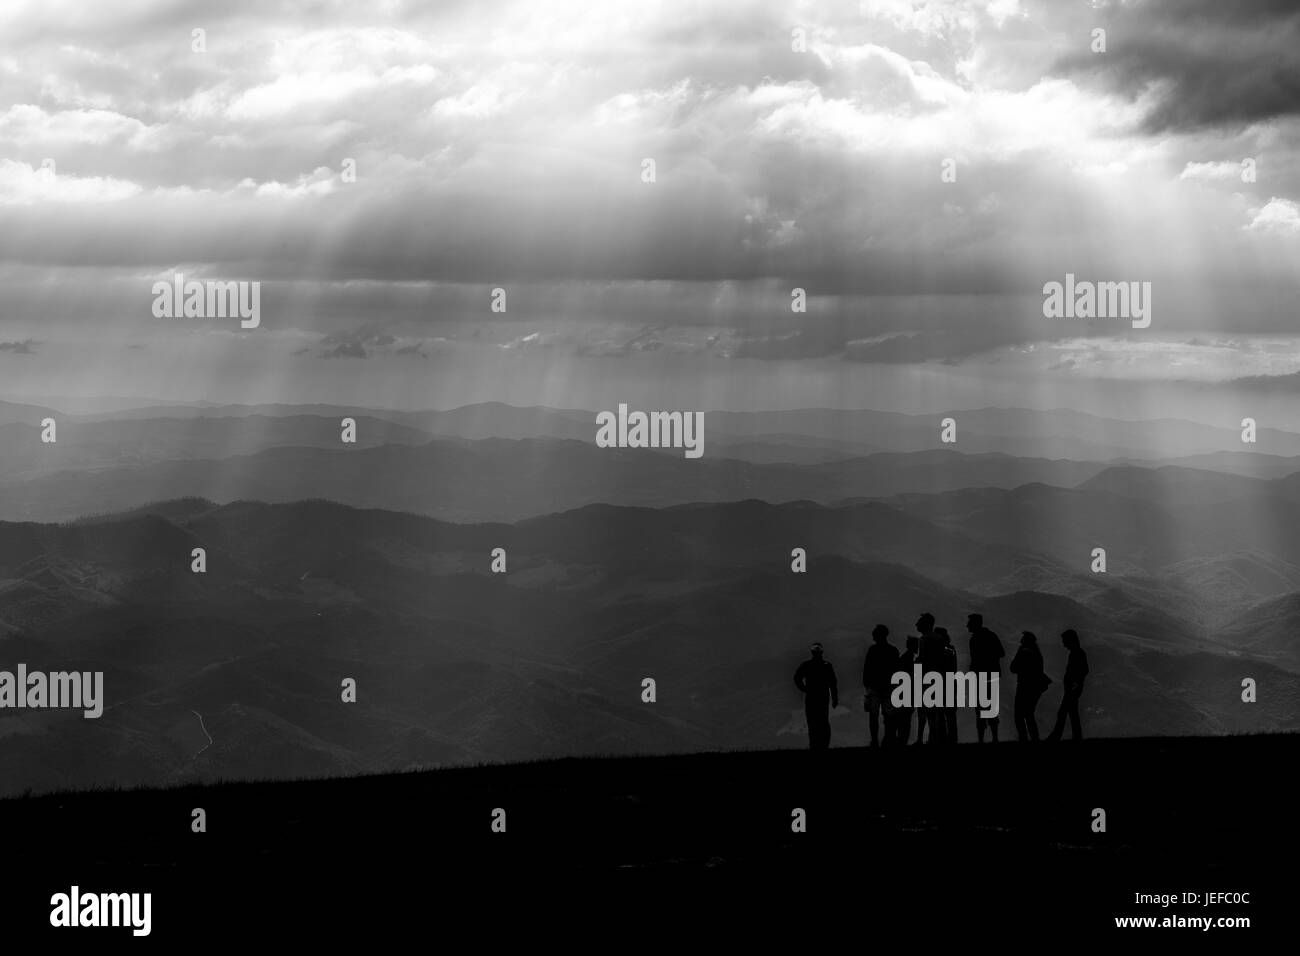 Some people on top of a mountain, with other mountains and hills in the background, and sunrays coming out of the - Stock Image